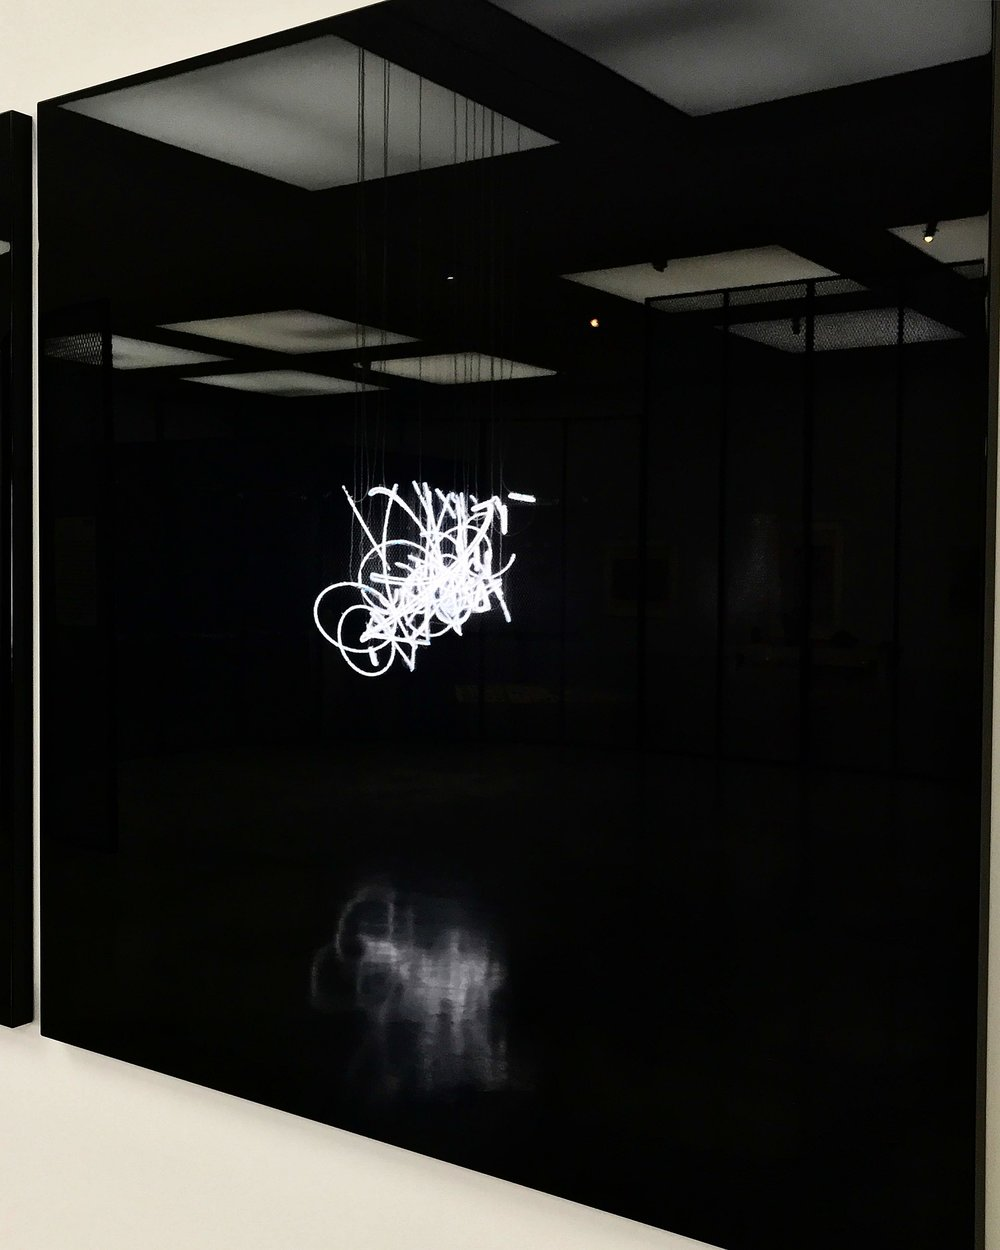 Cerith Wyn Evans 'Neon Forms (after Noh X)' reflected in Robert Irwin, 'Black Painting' | White Cube Bermondsey